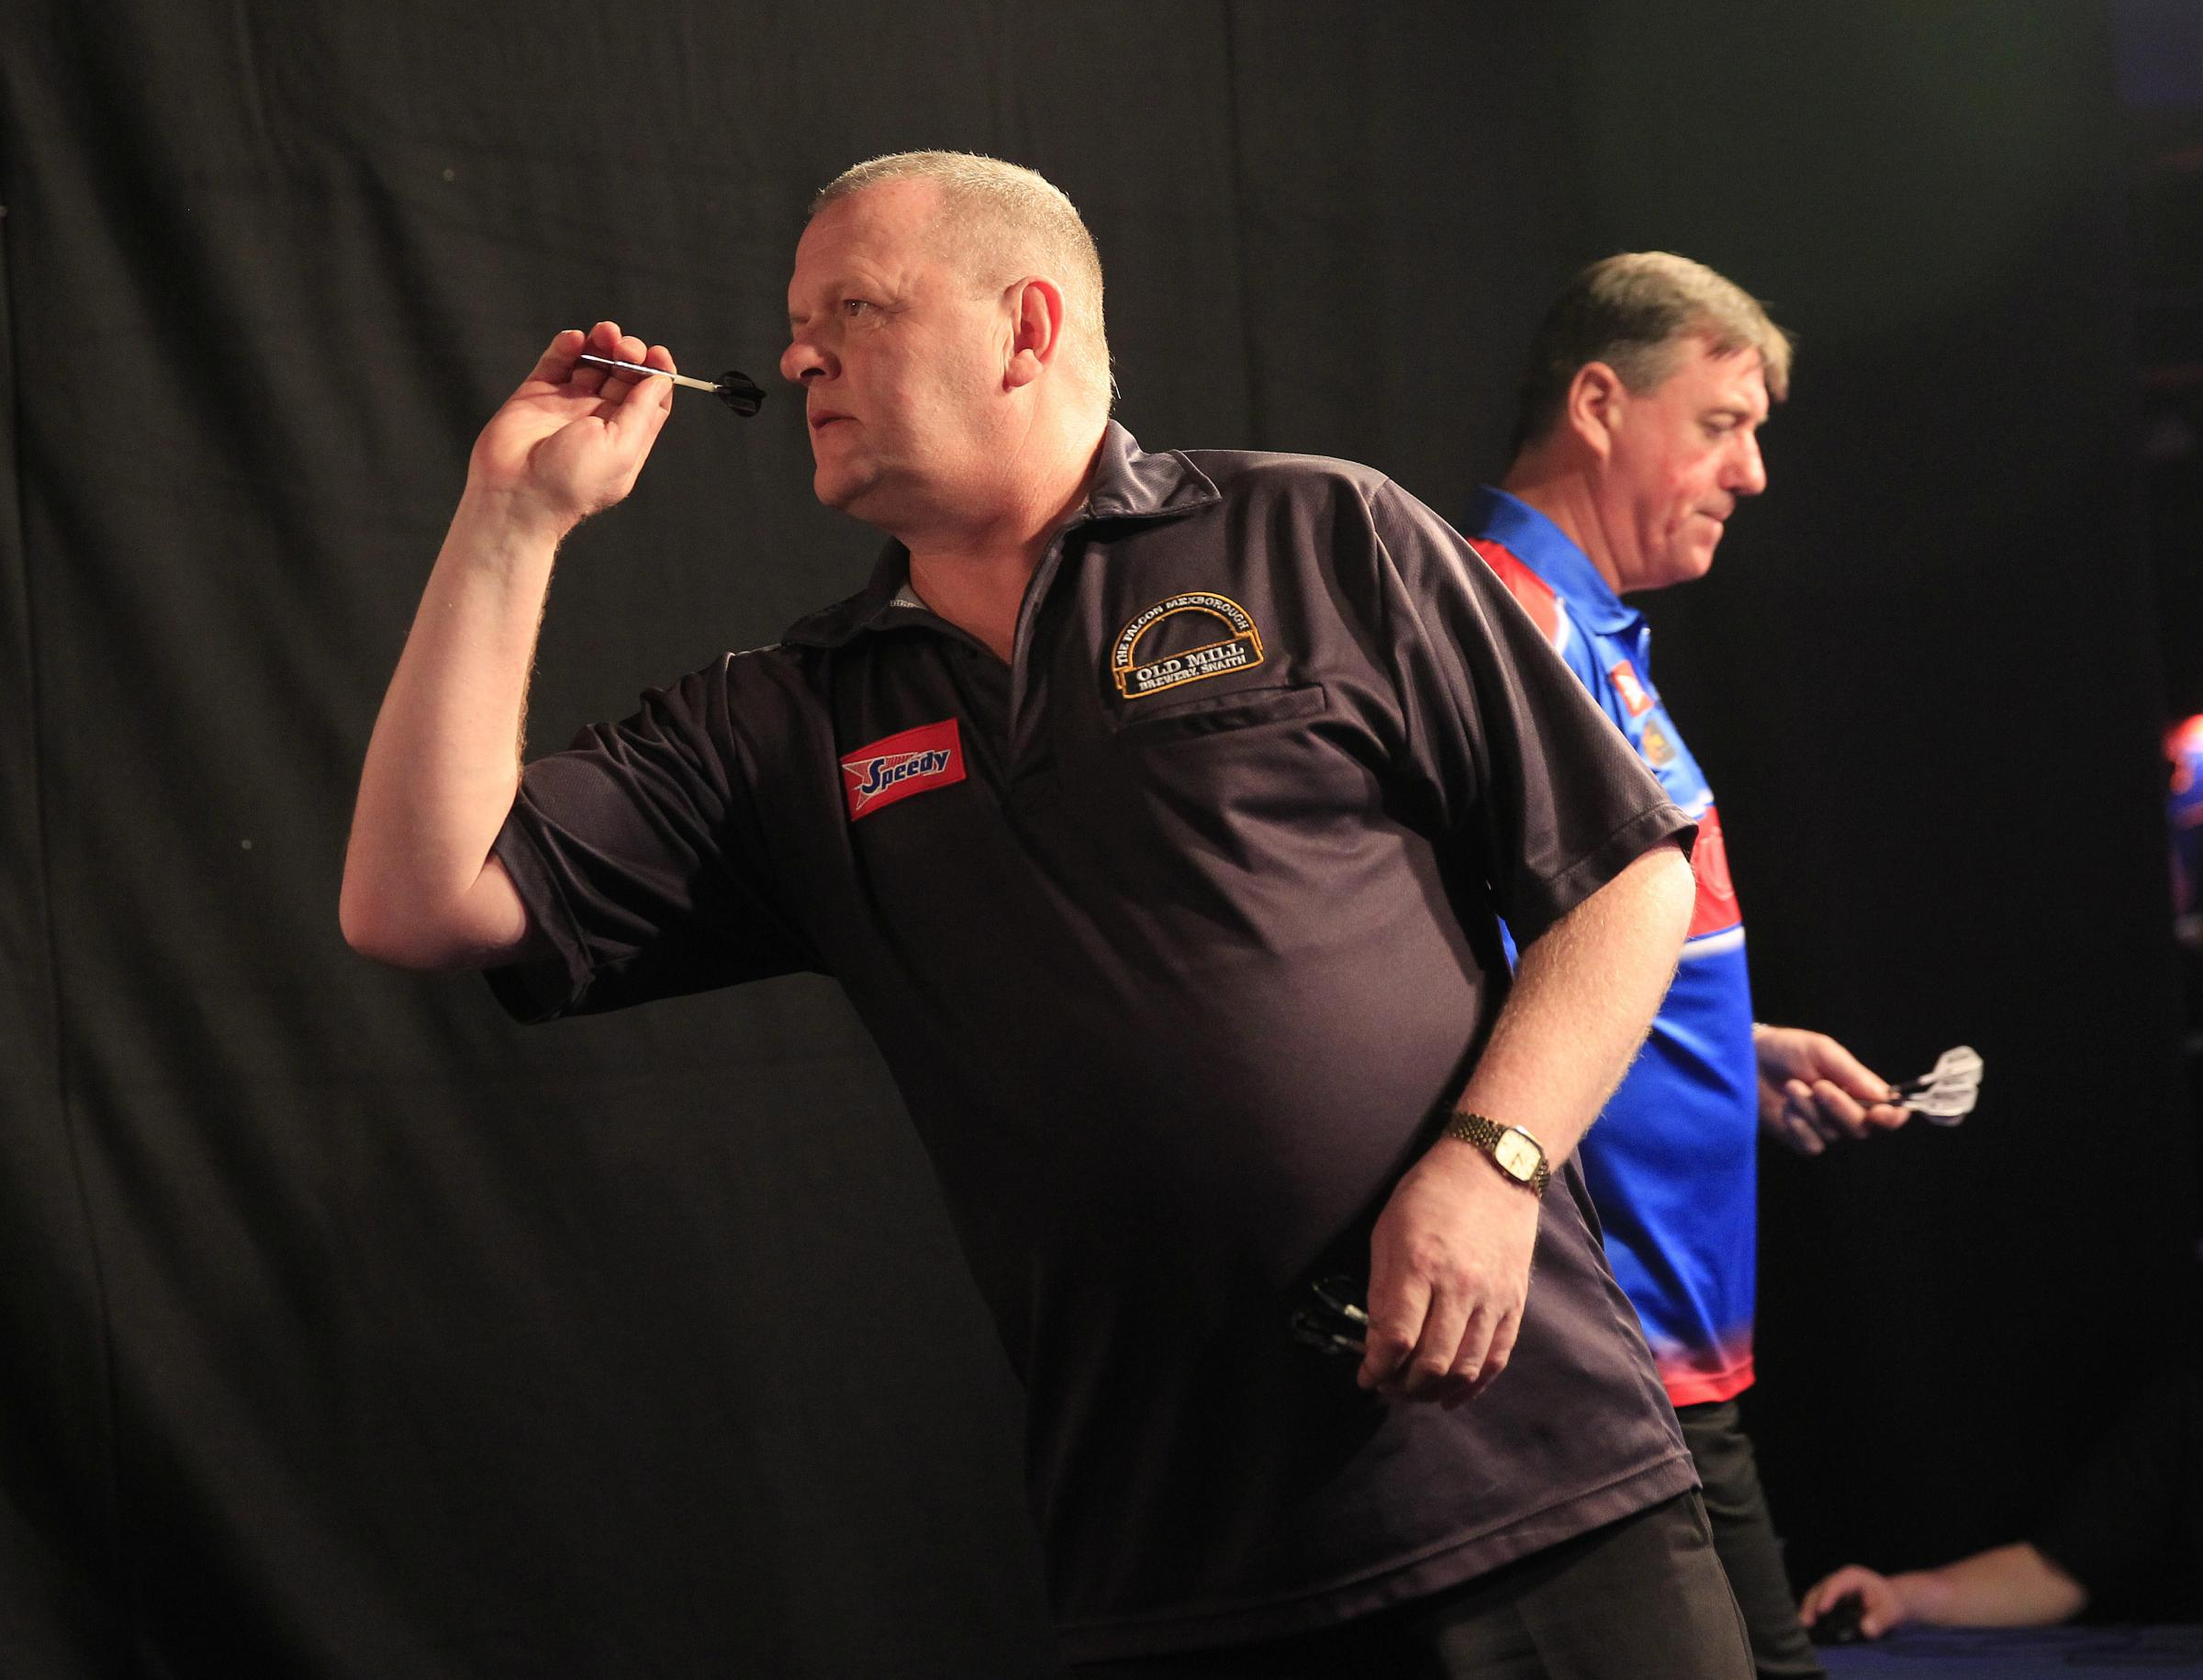 Terry Temple, who was beaten 6-4 by Ross Smith in the last qualifying round for the German Masters in Berlin